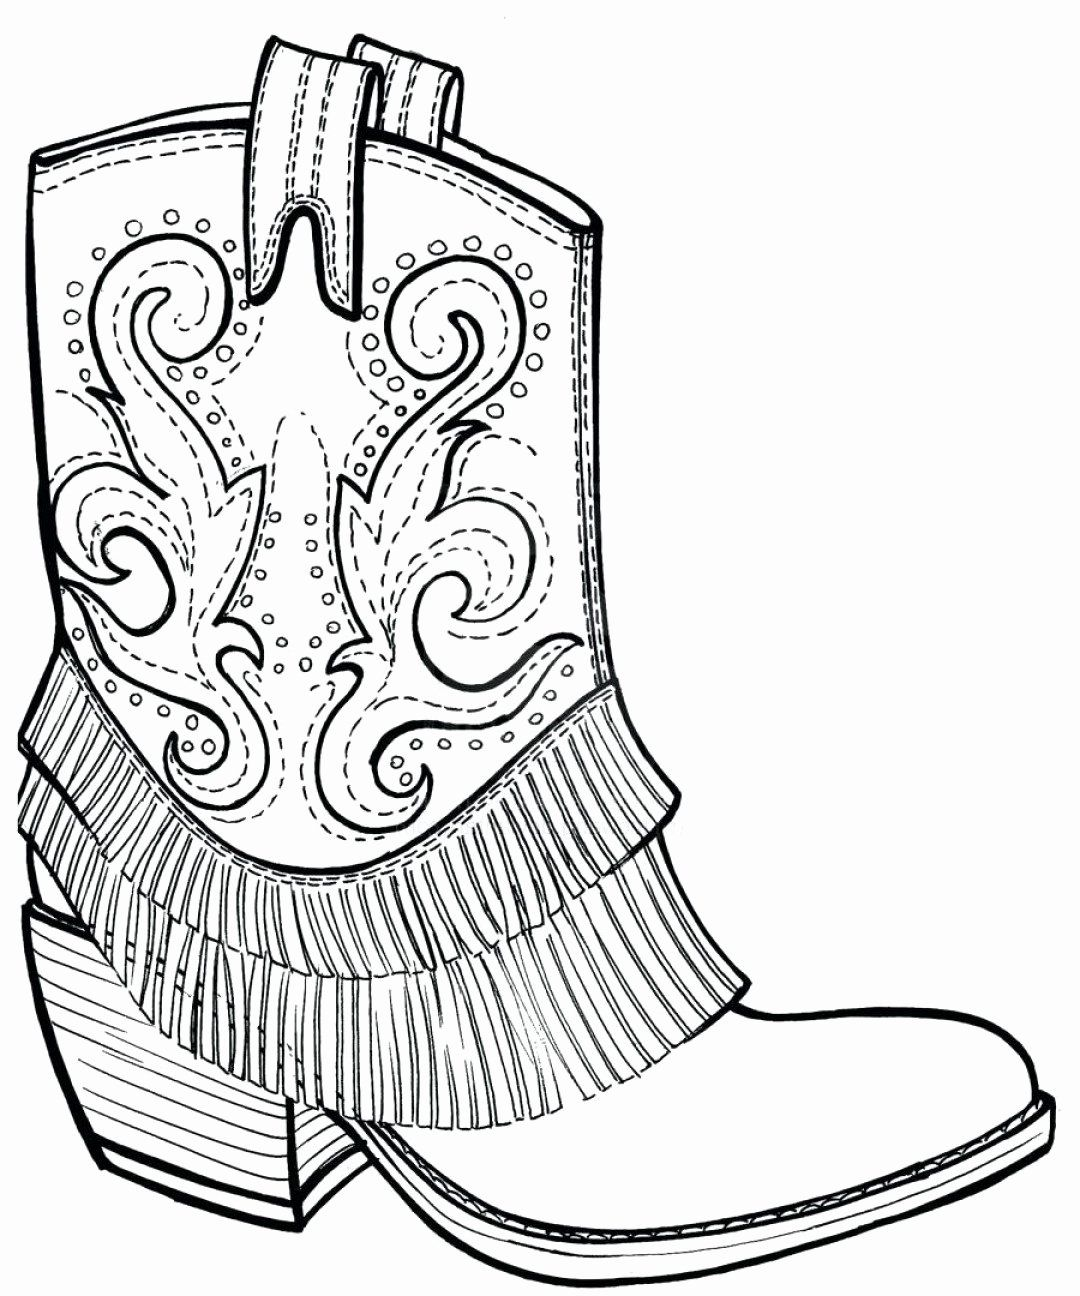 28 Cowboy Boots Coloring Page In 2020 Cowboy Boots Drawing